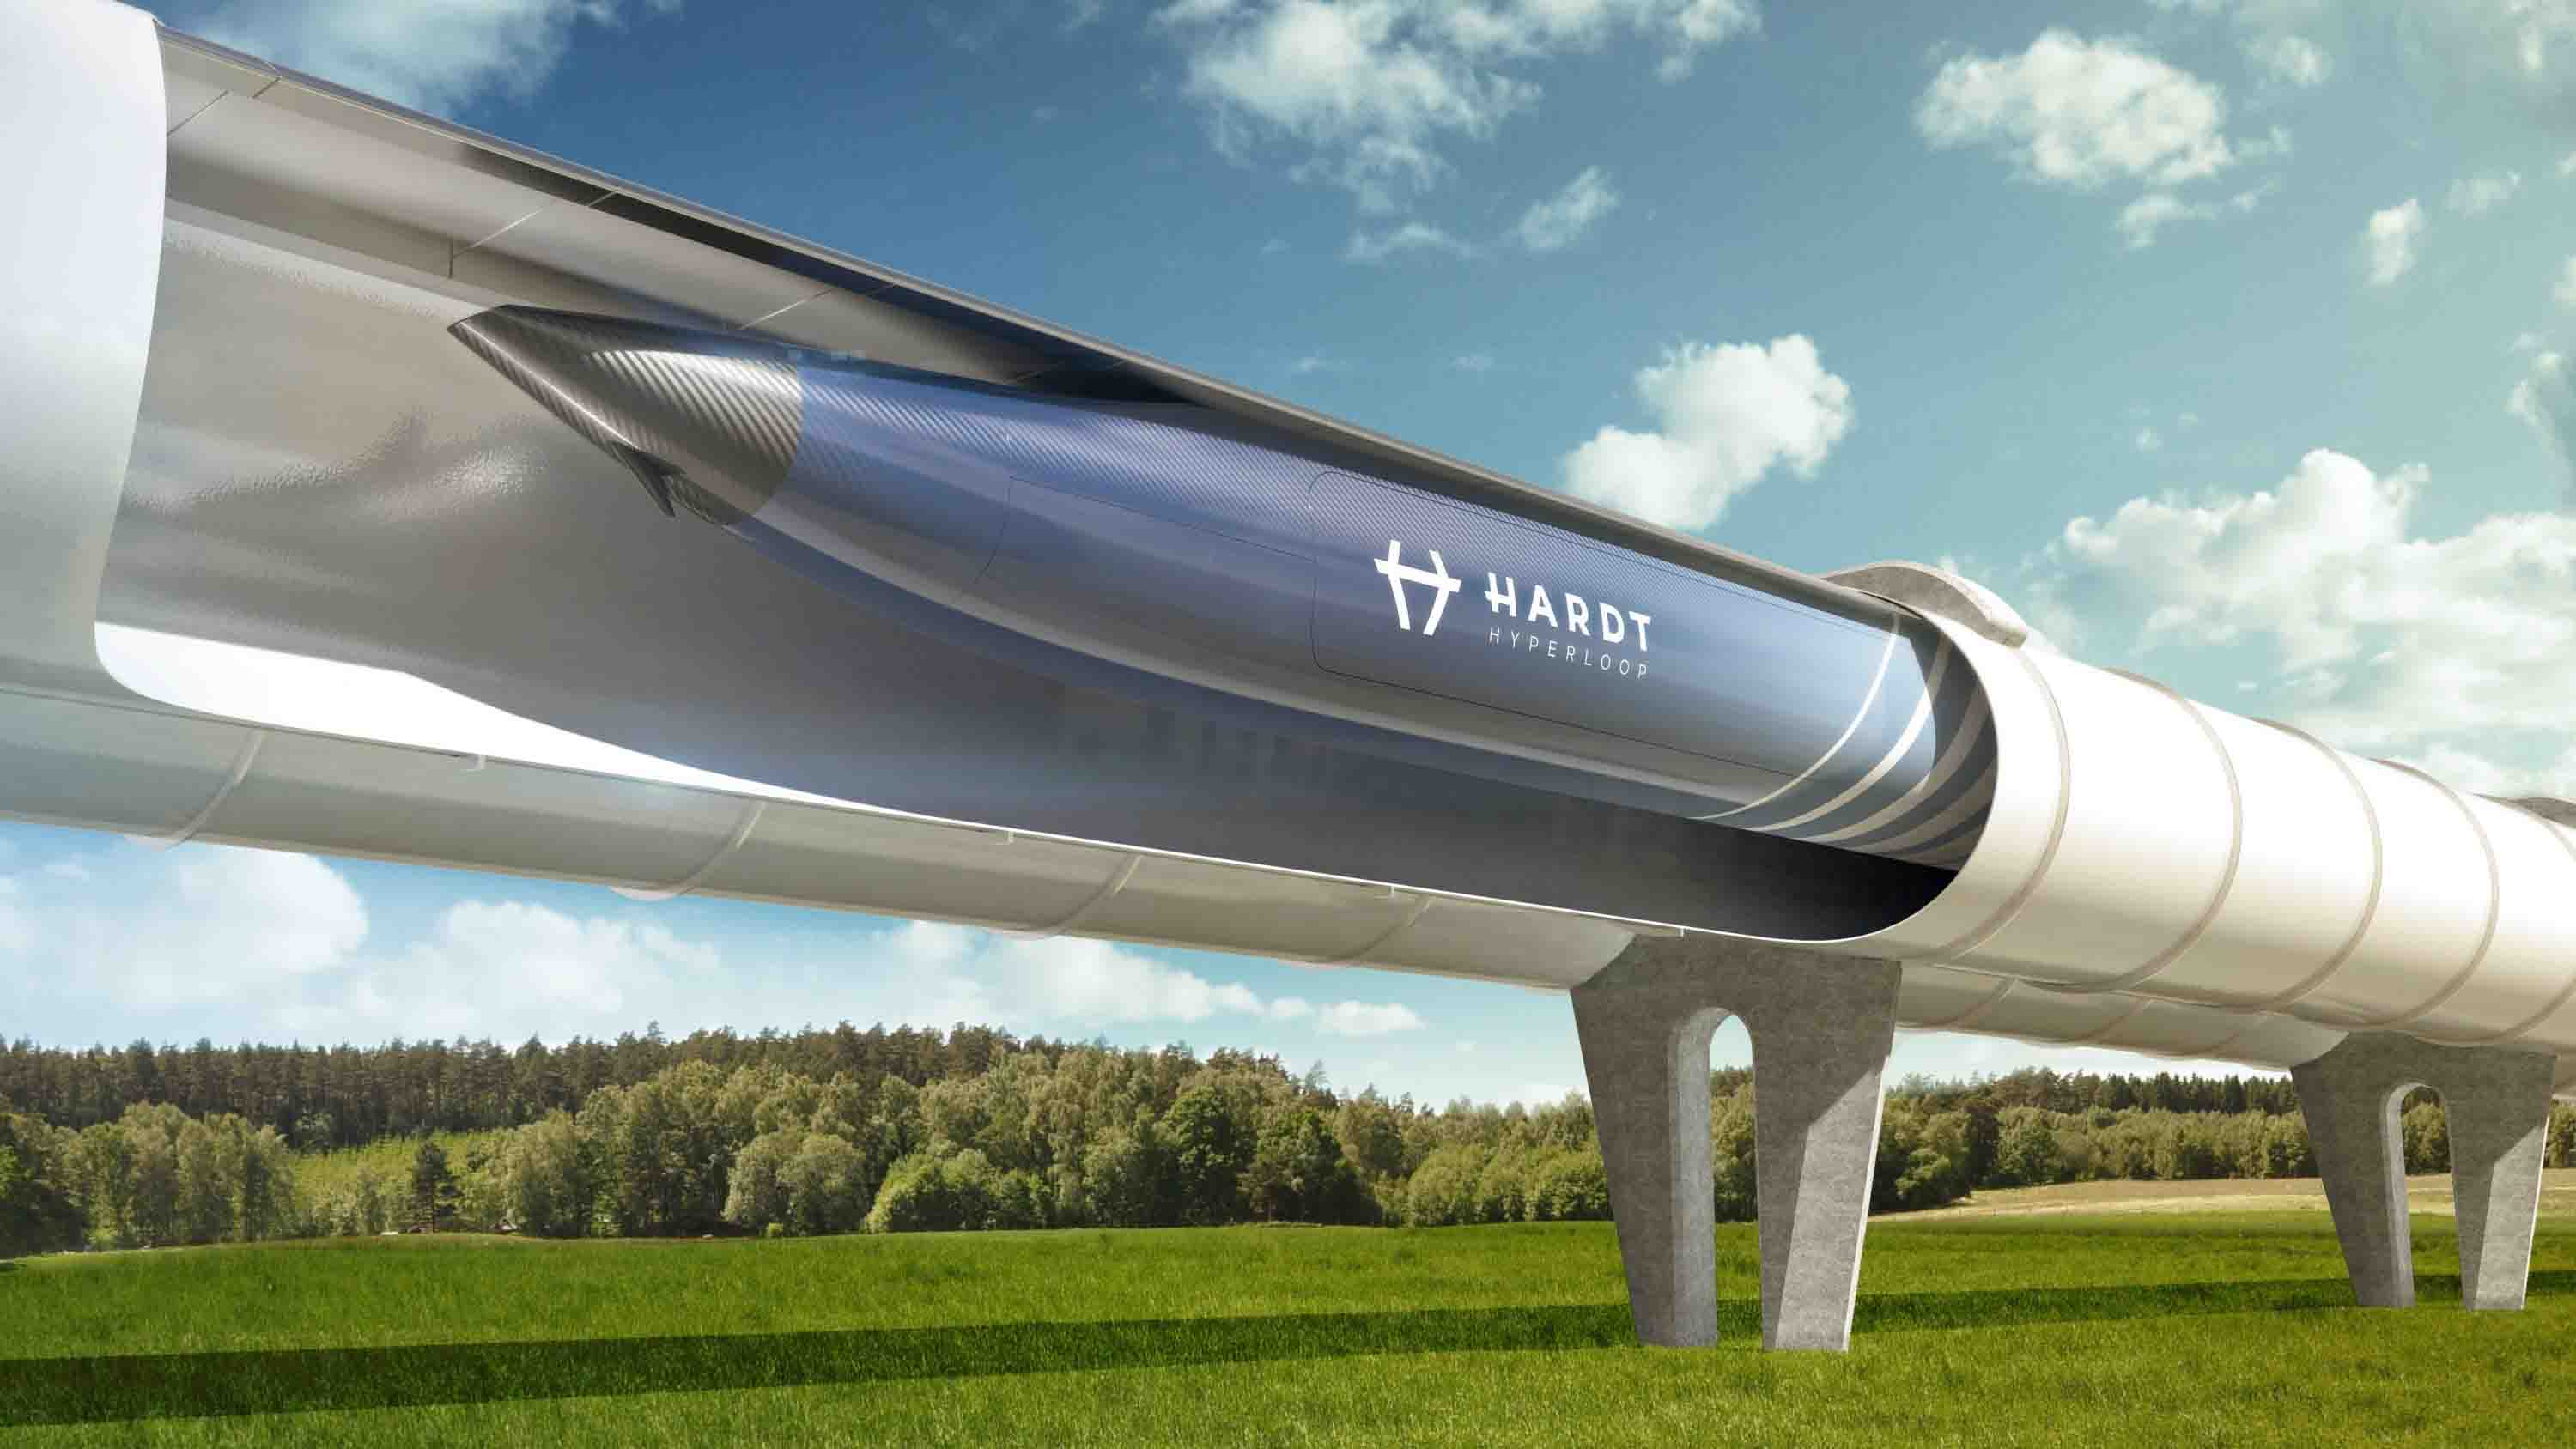 Hyperloop Hardt, Hyperloop Transportation Technologies, Европа, ЕС, Илон Маск, Нидерланды